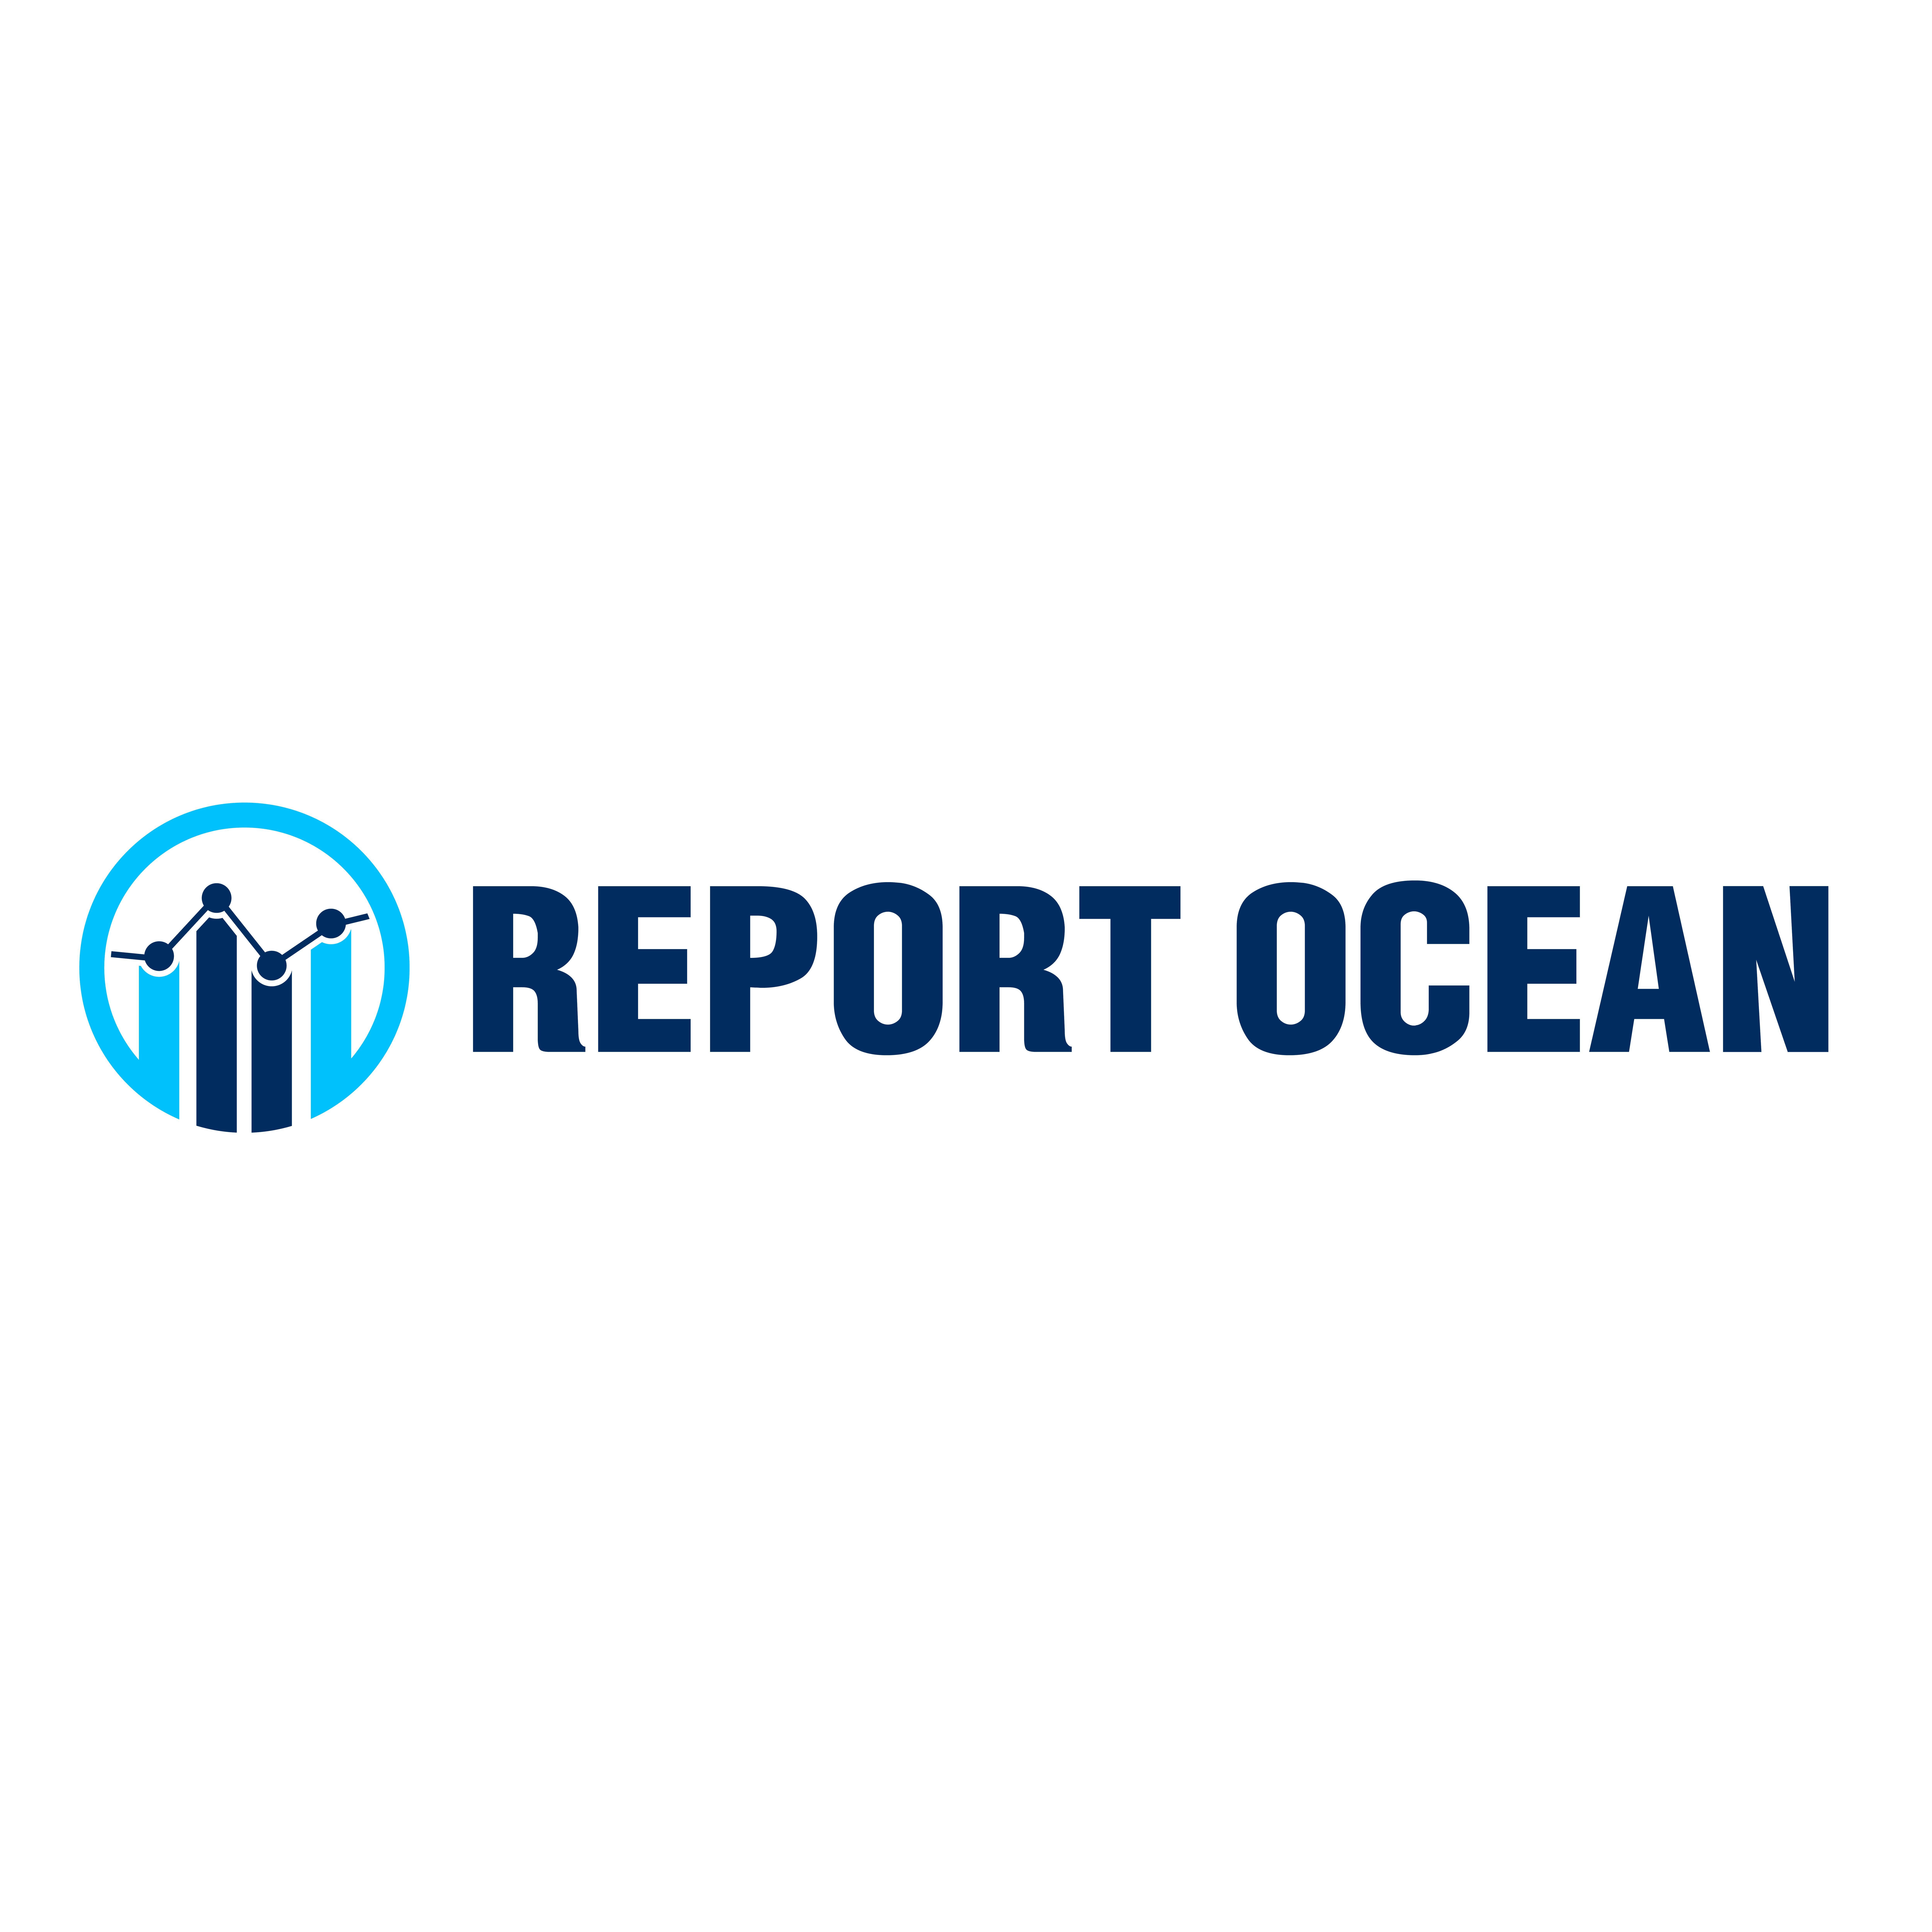 Global Potting Compound Market to Progress at 4% CAGR between 2020 and 2027